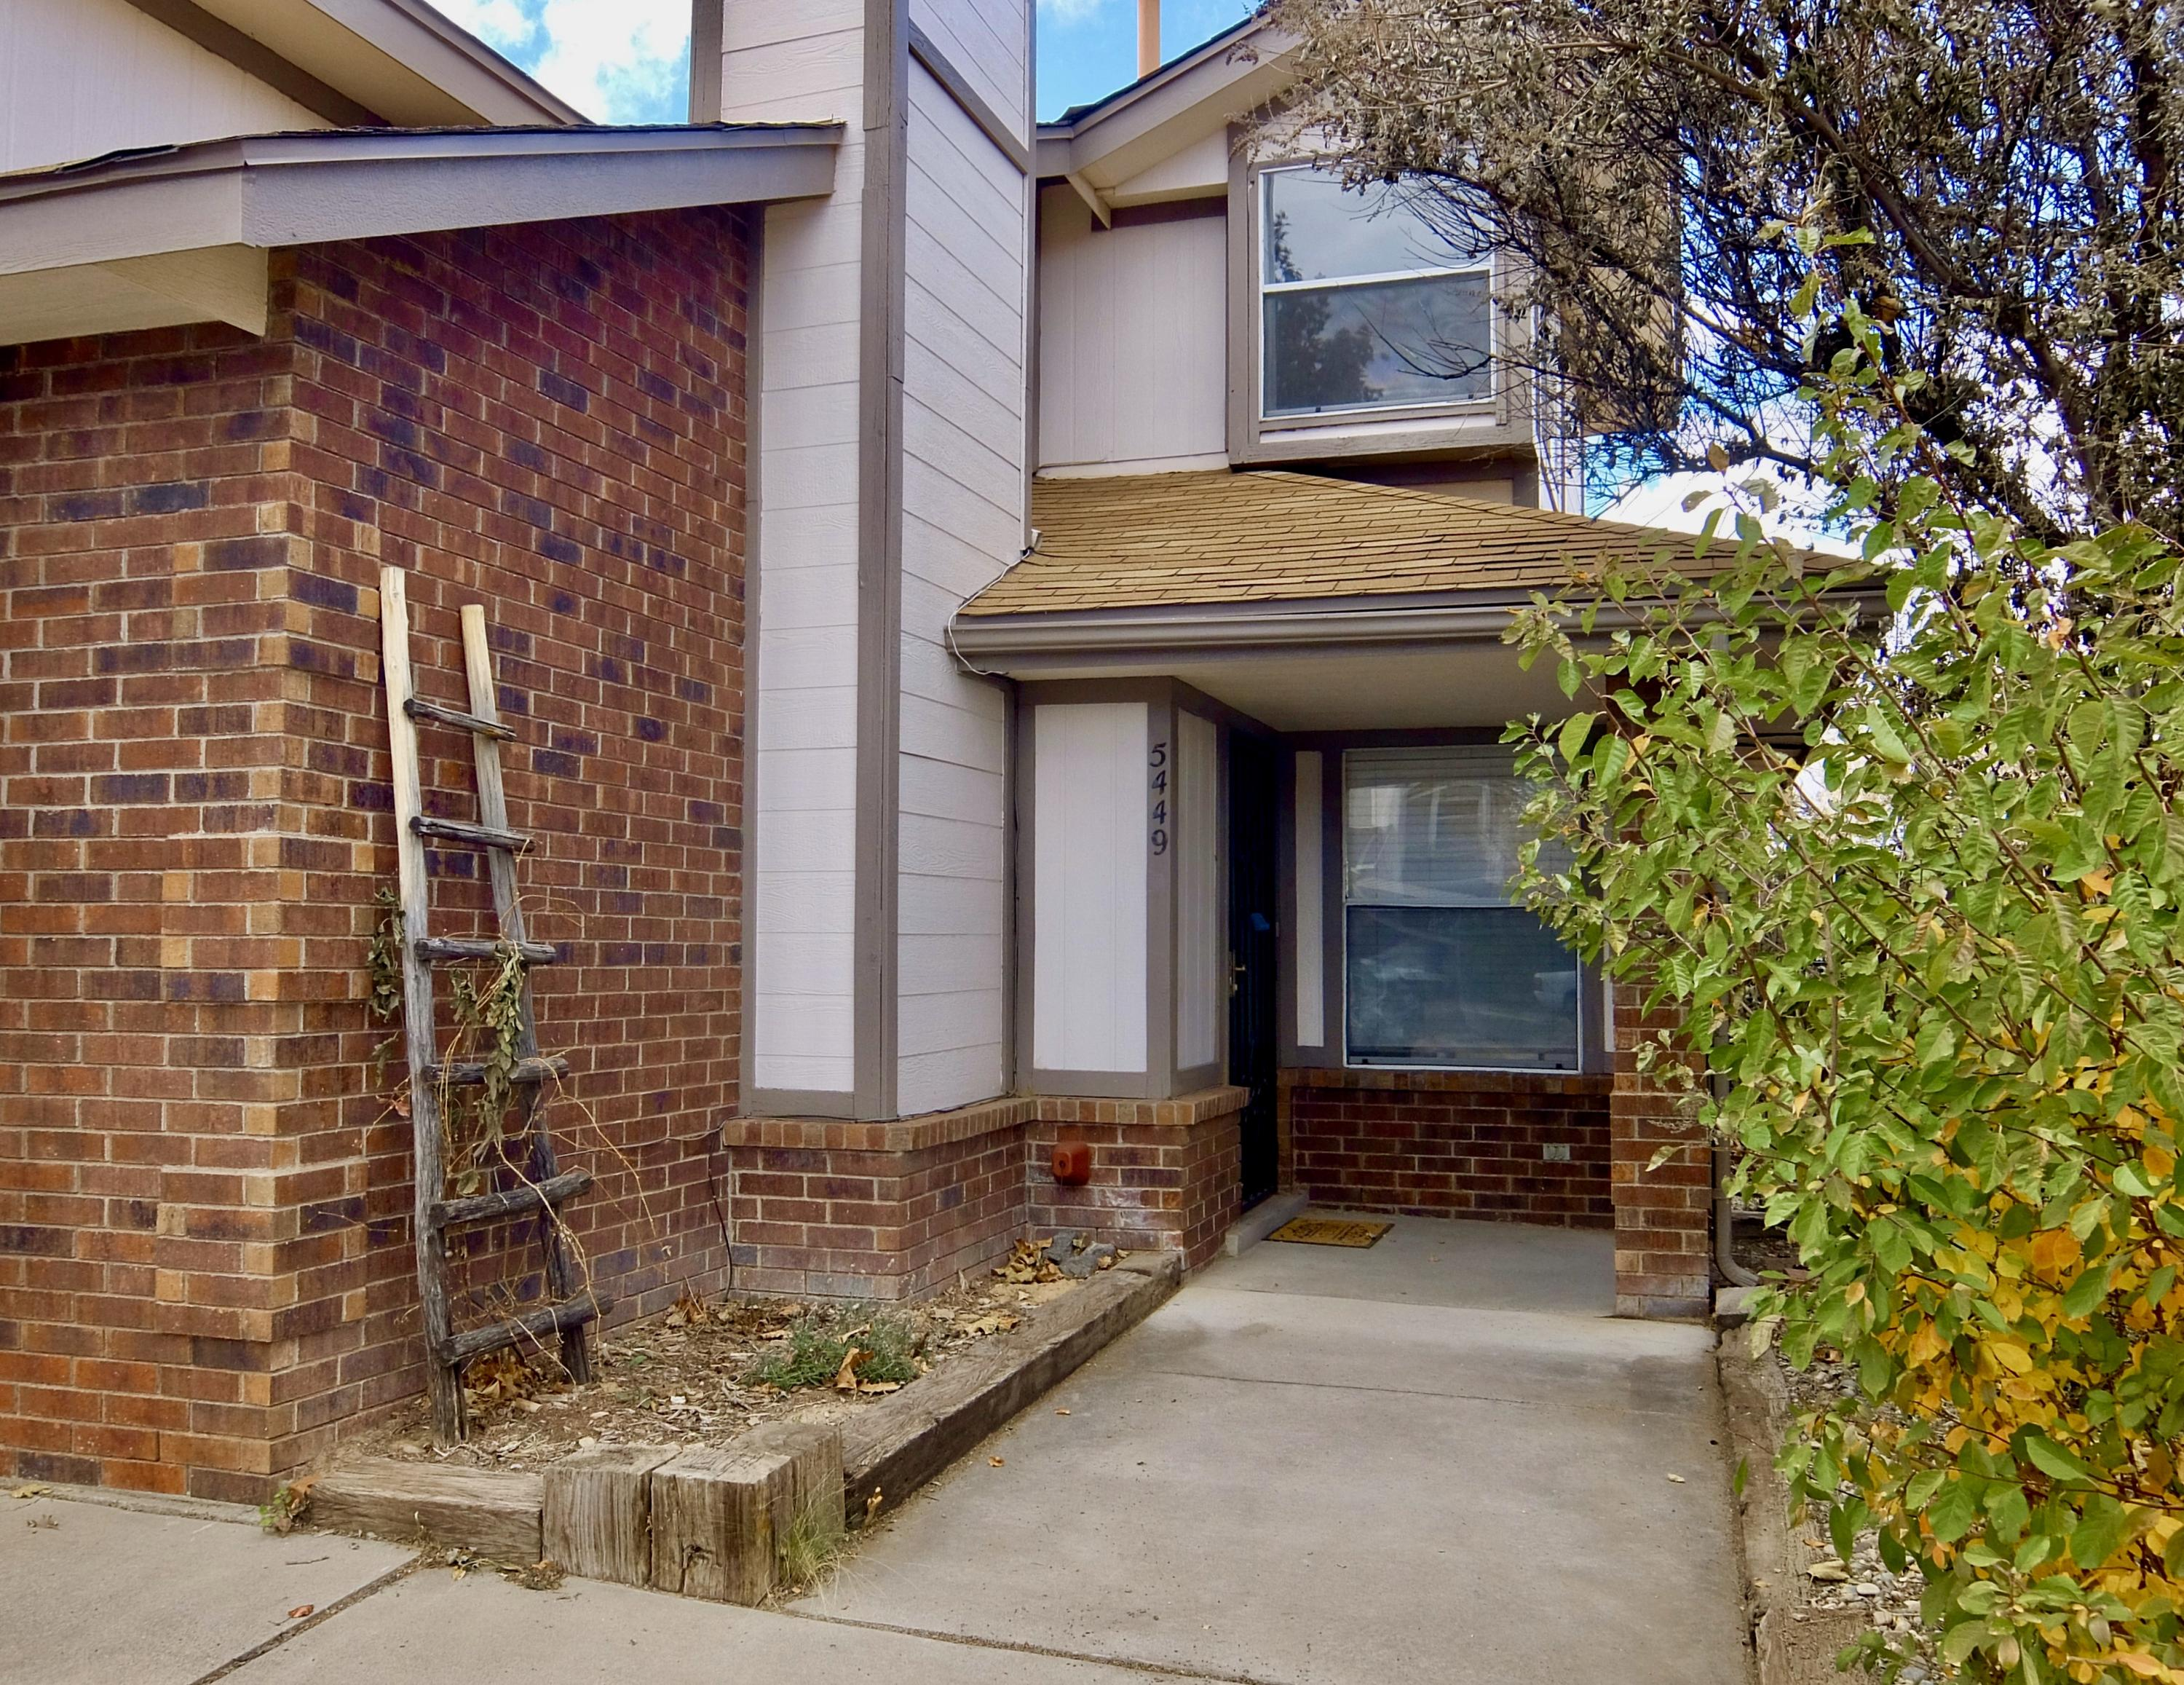 Sweet townhouse in Northwest Heights.  2 bedroom and 2 full baths plus a small loft space at the top of the stairs that would be a great space for an office.  All new paint inside and out as well as new doors and hardware.  The back yard has tons of potential.  Go take a look today.